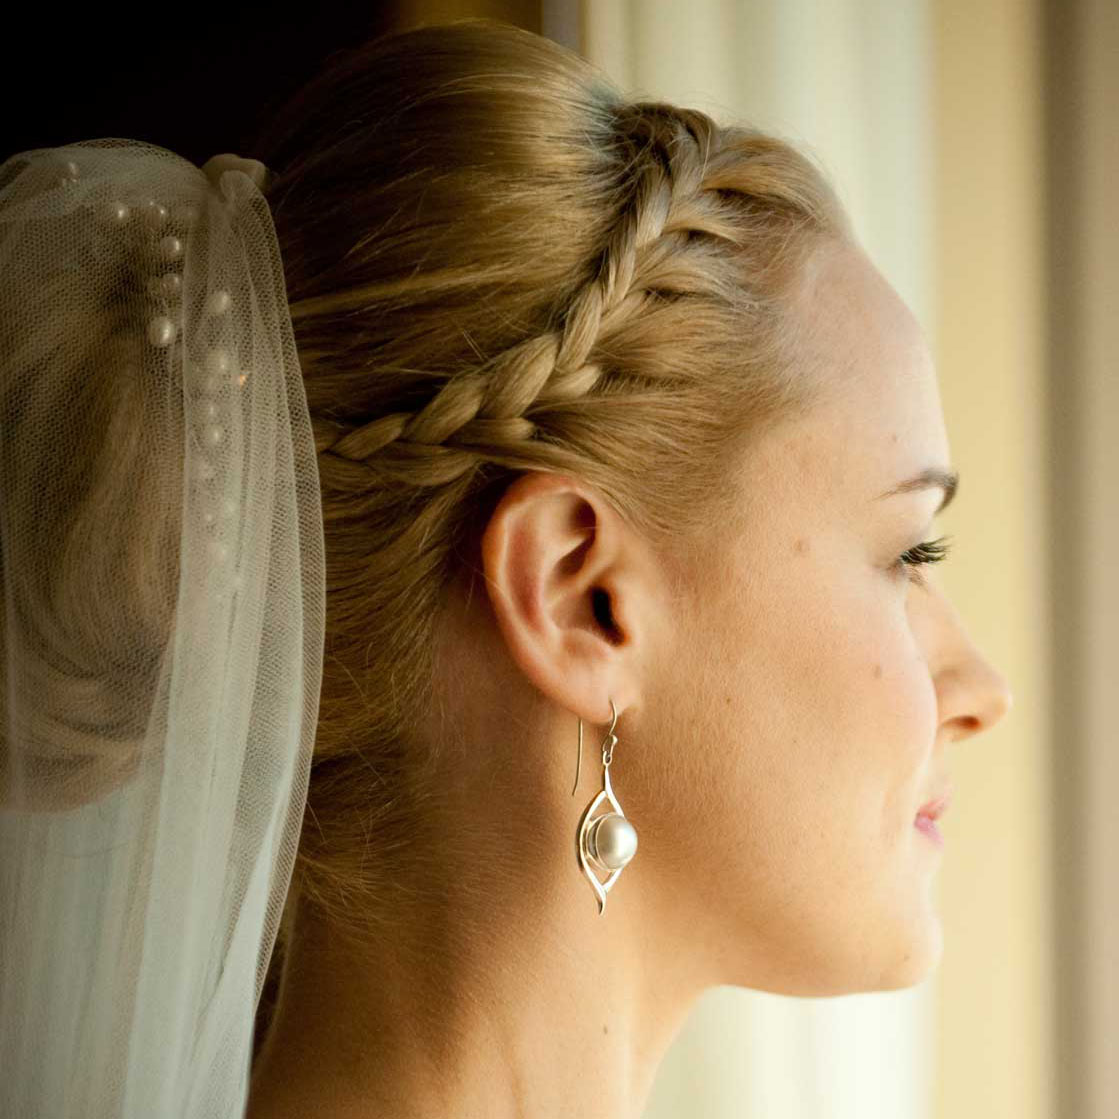 Wedding Hairstyles Braid: Wear Braids On Your Wedding Day! : Have Your Dream Wedding